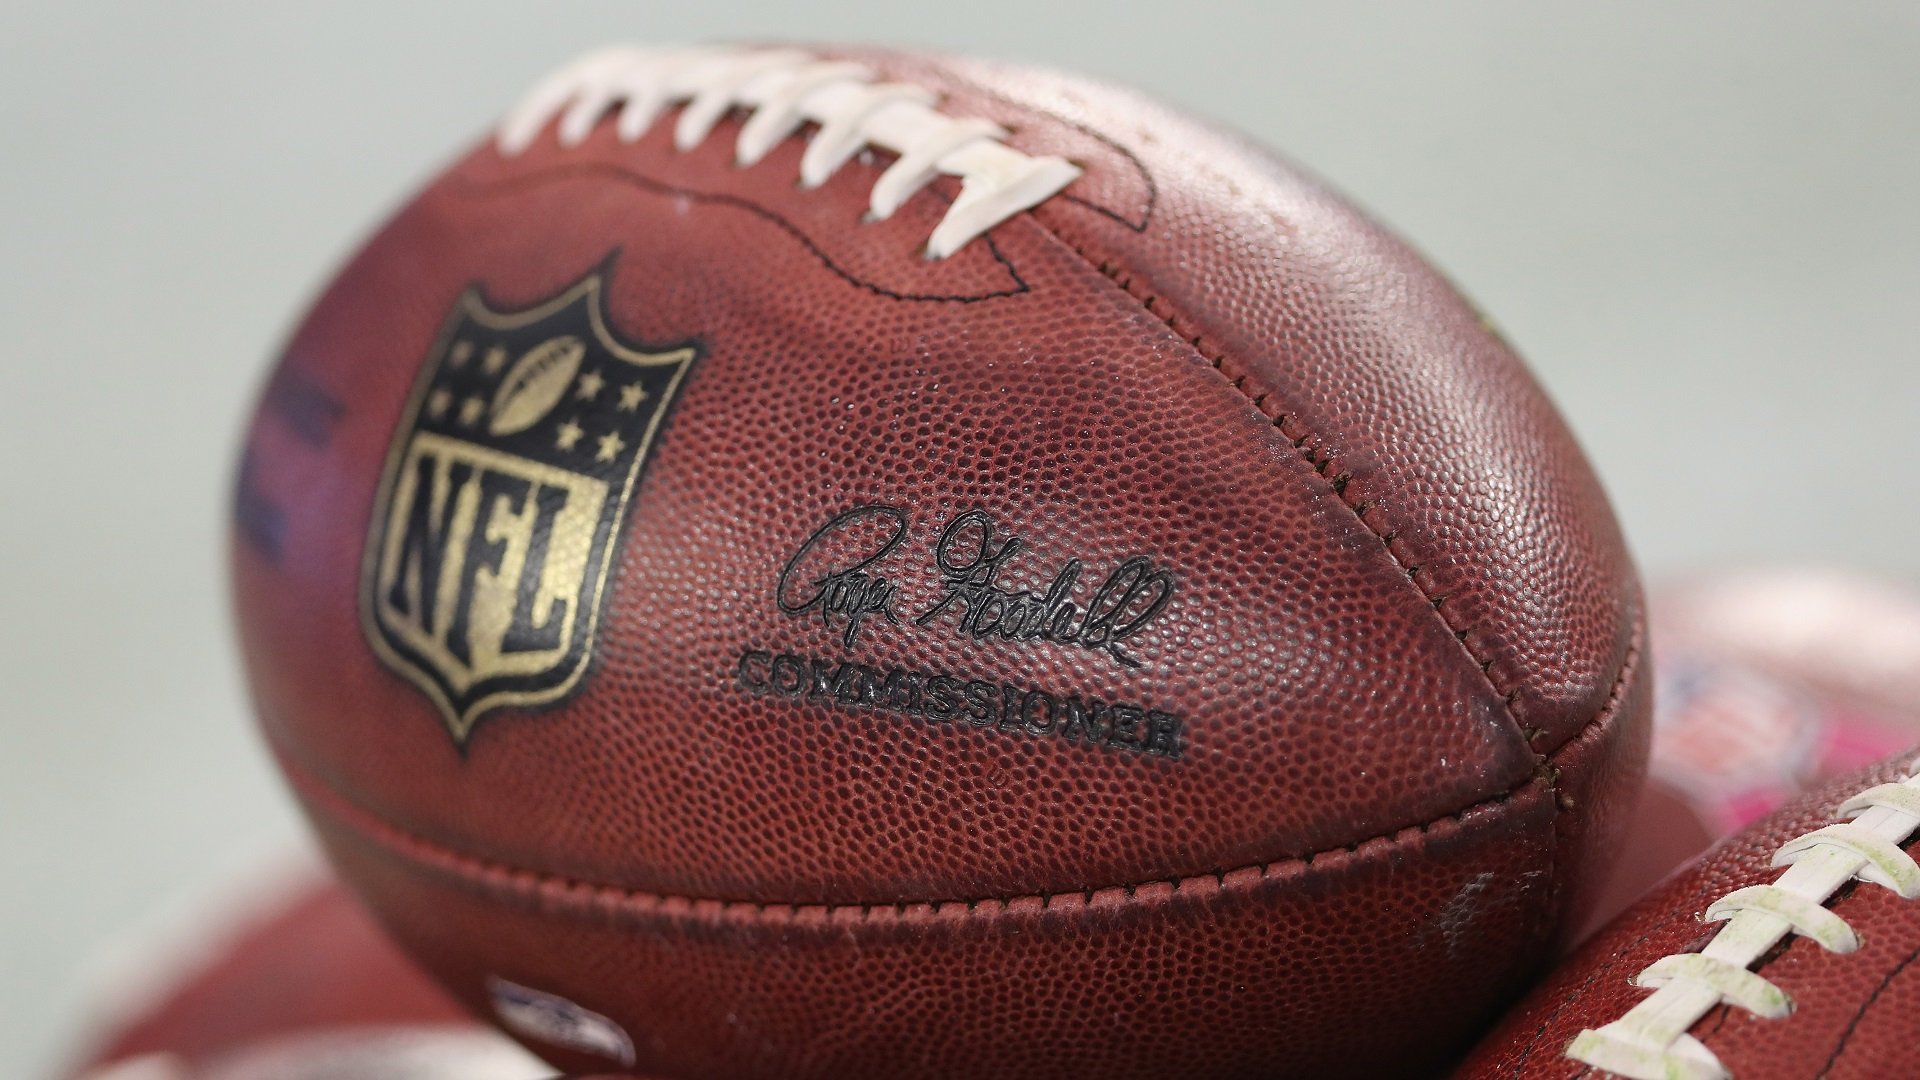 NFL FOOTBALL GENERIC BALL